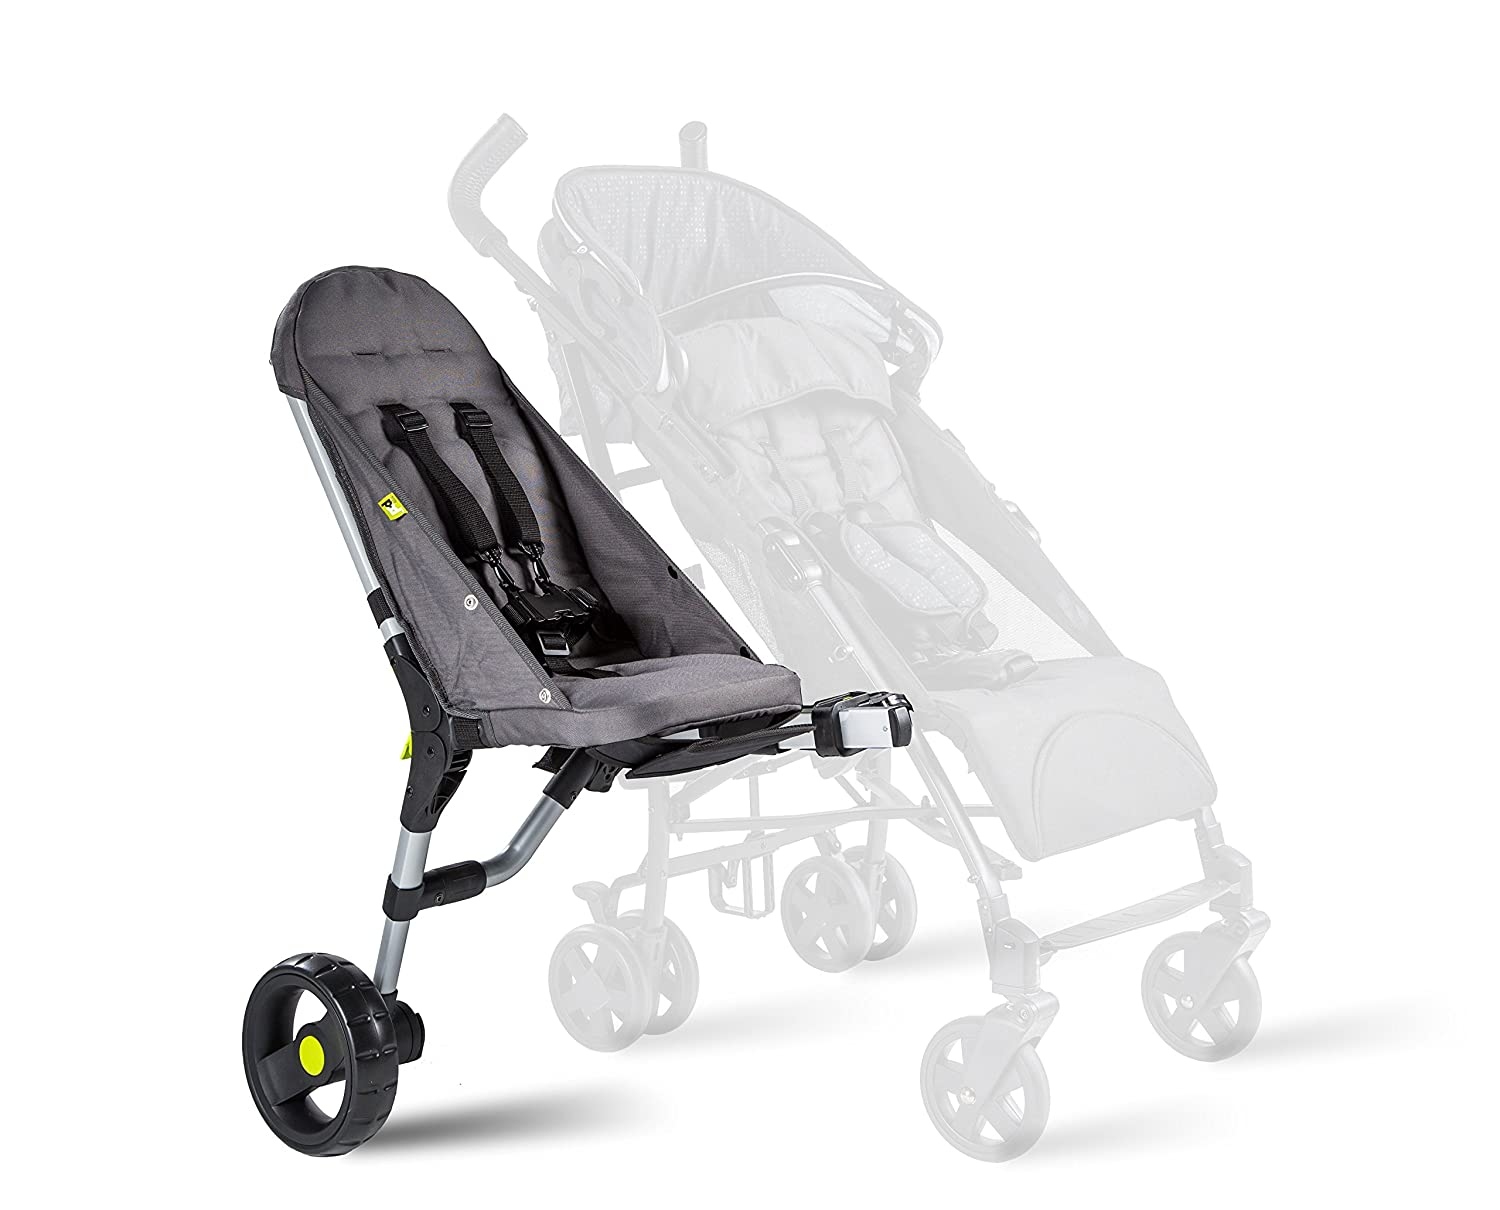 Buggypod Lite - side seat for pushchairs, anthracite 1000 0012